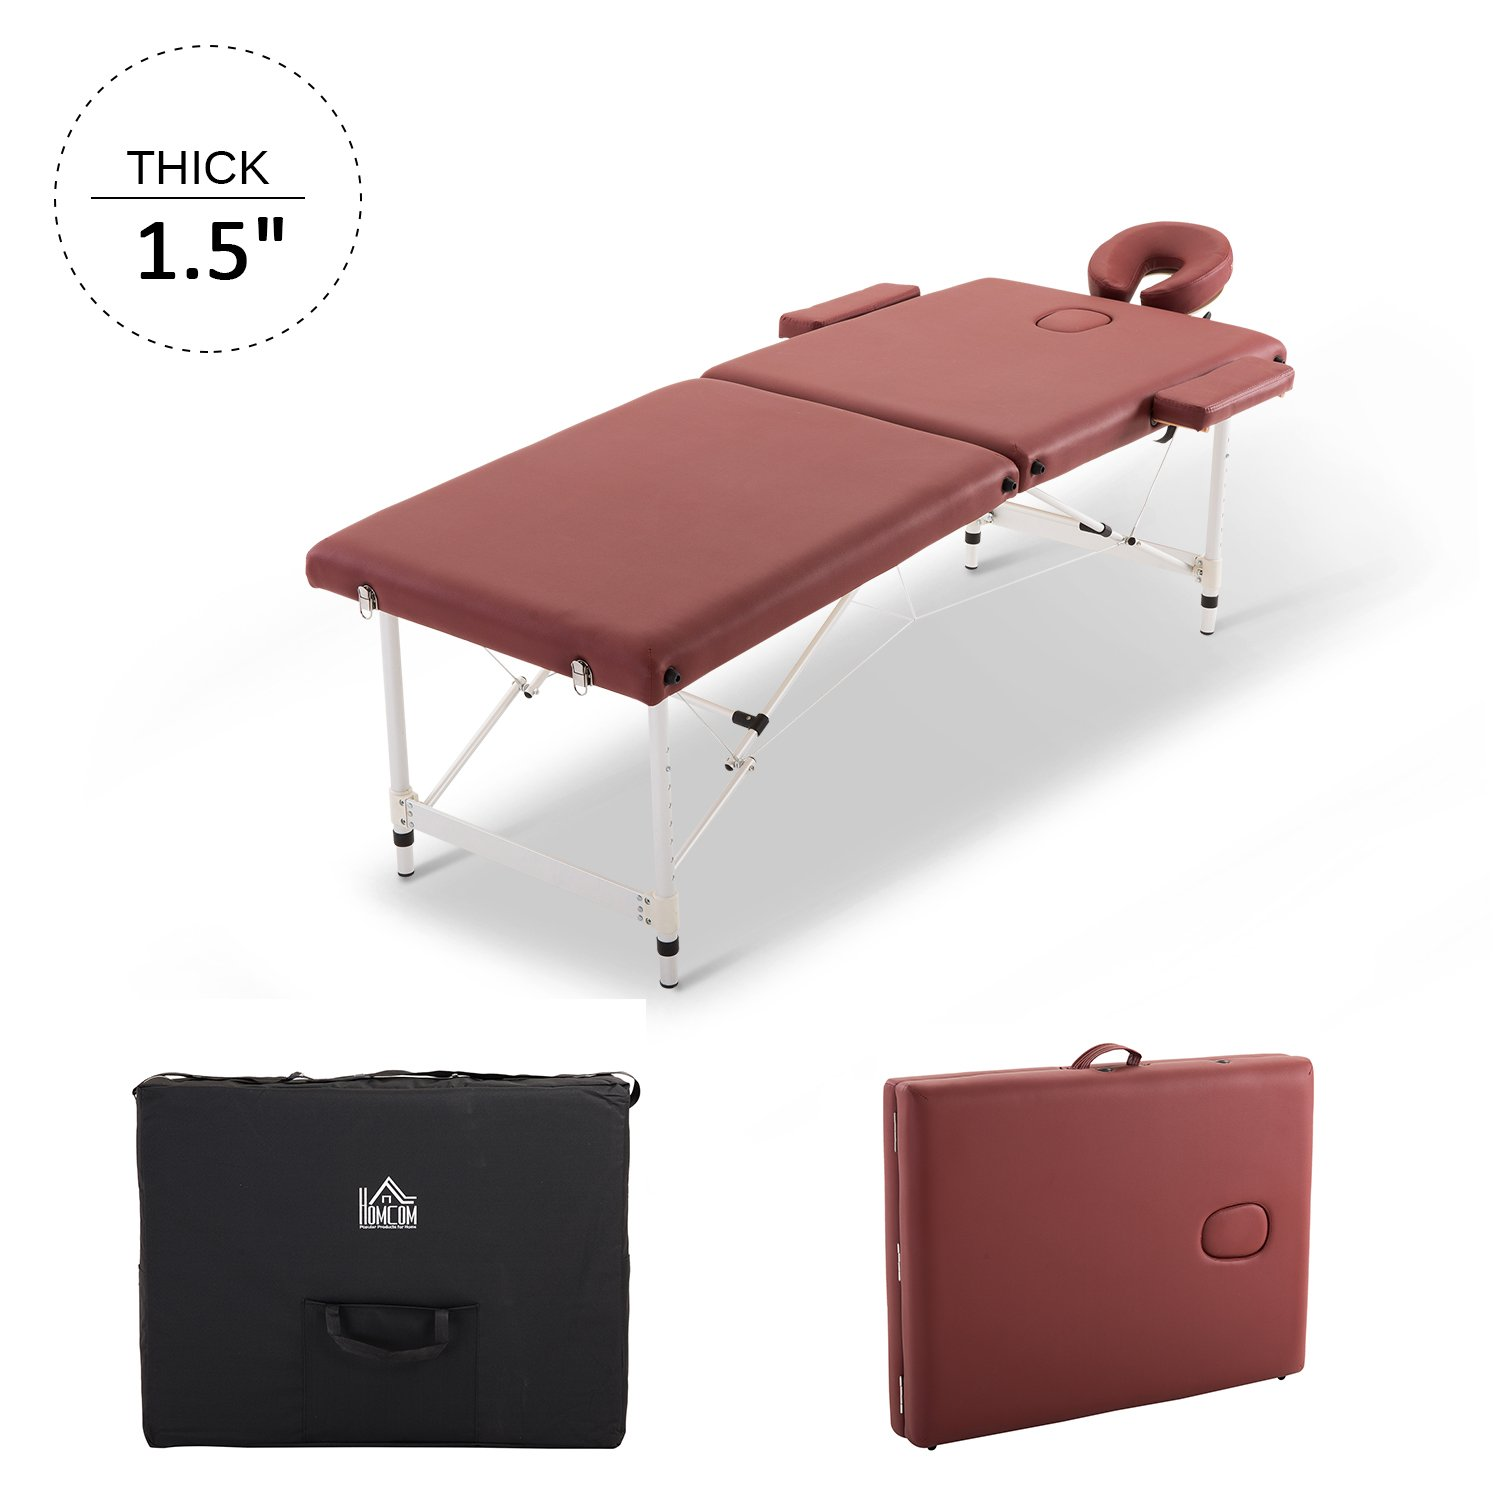 HOMCOM 73 2 Section Foldable Massage Table Professional Salon SPA Facial Couch Tatoo Bed with Carry Bag Red Aosom Canada CA700-077RD0231